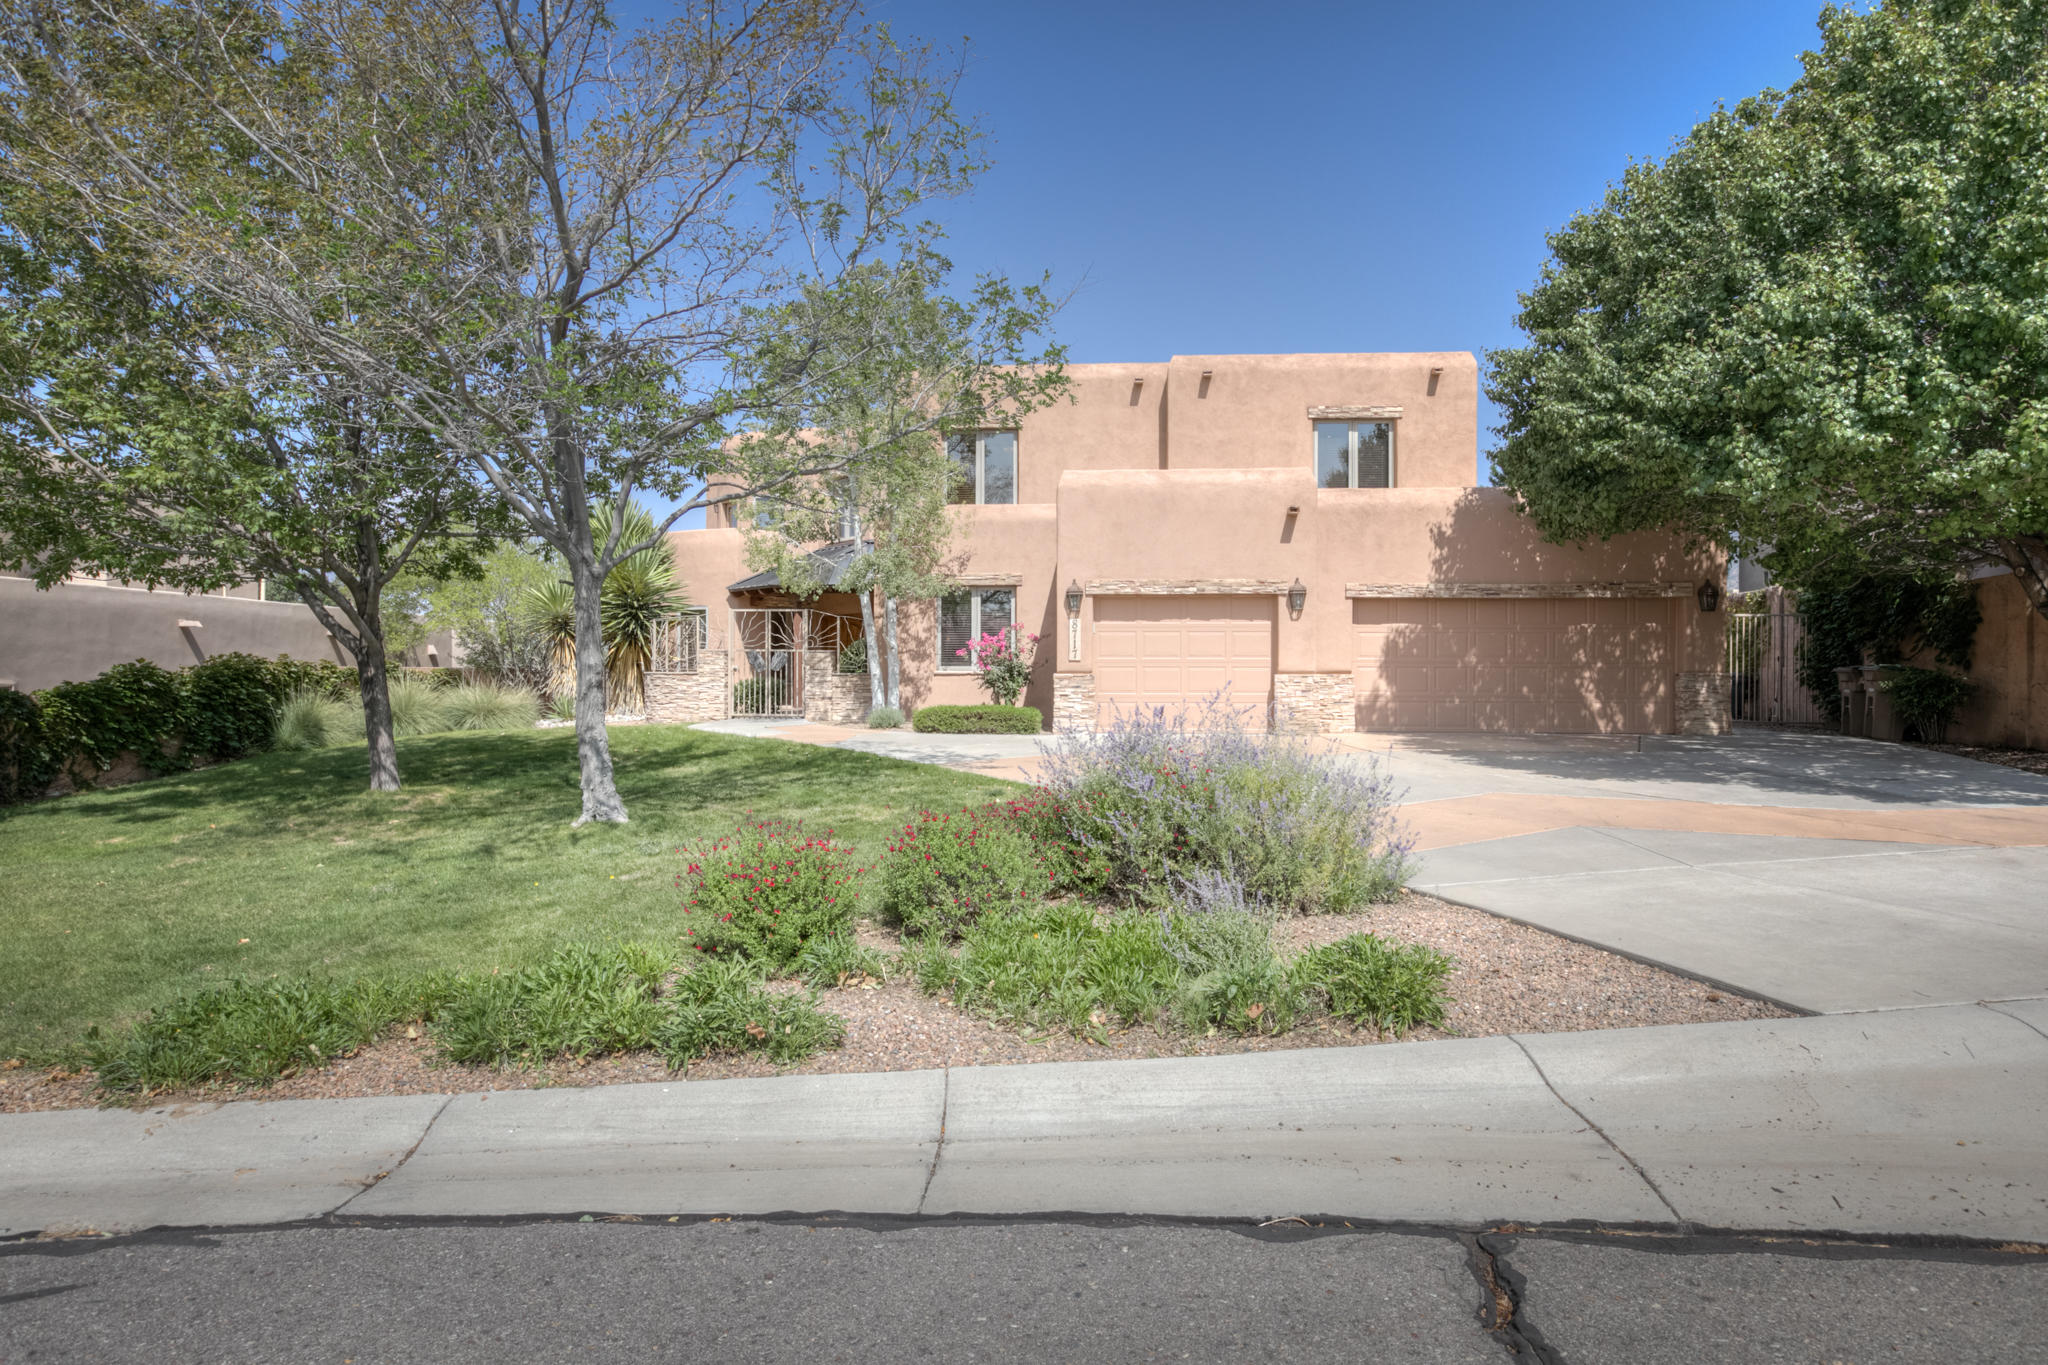 8717 ROYAL GLO Drive NE Property Photo - Albuquerque, NM real estate listing